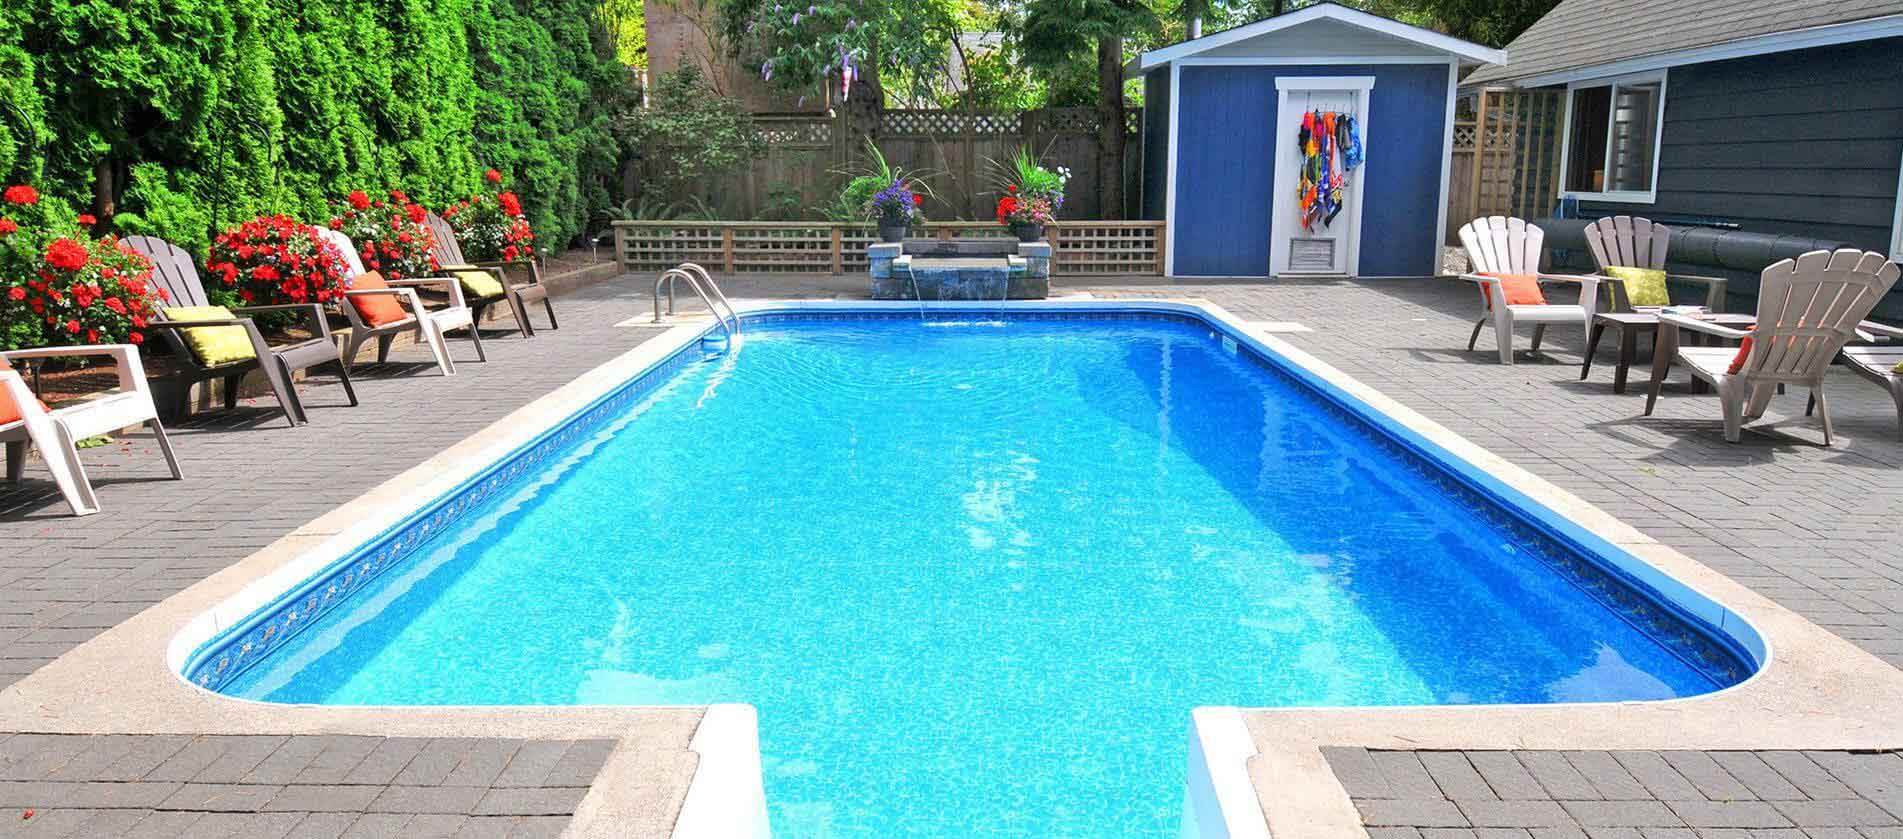 Zwembad Vennen Monarch Pools And Spas Totowa Nj Swimming Pool Contractor